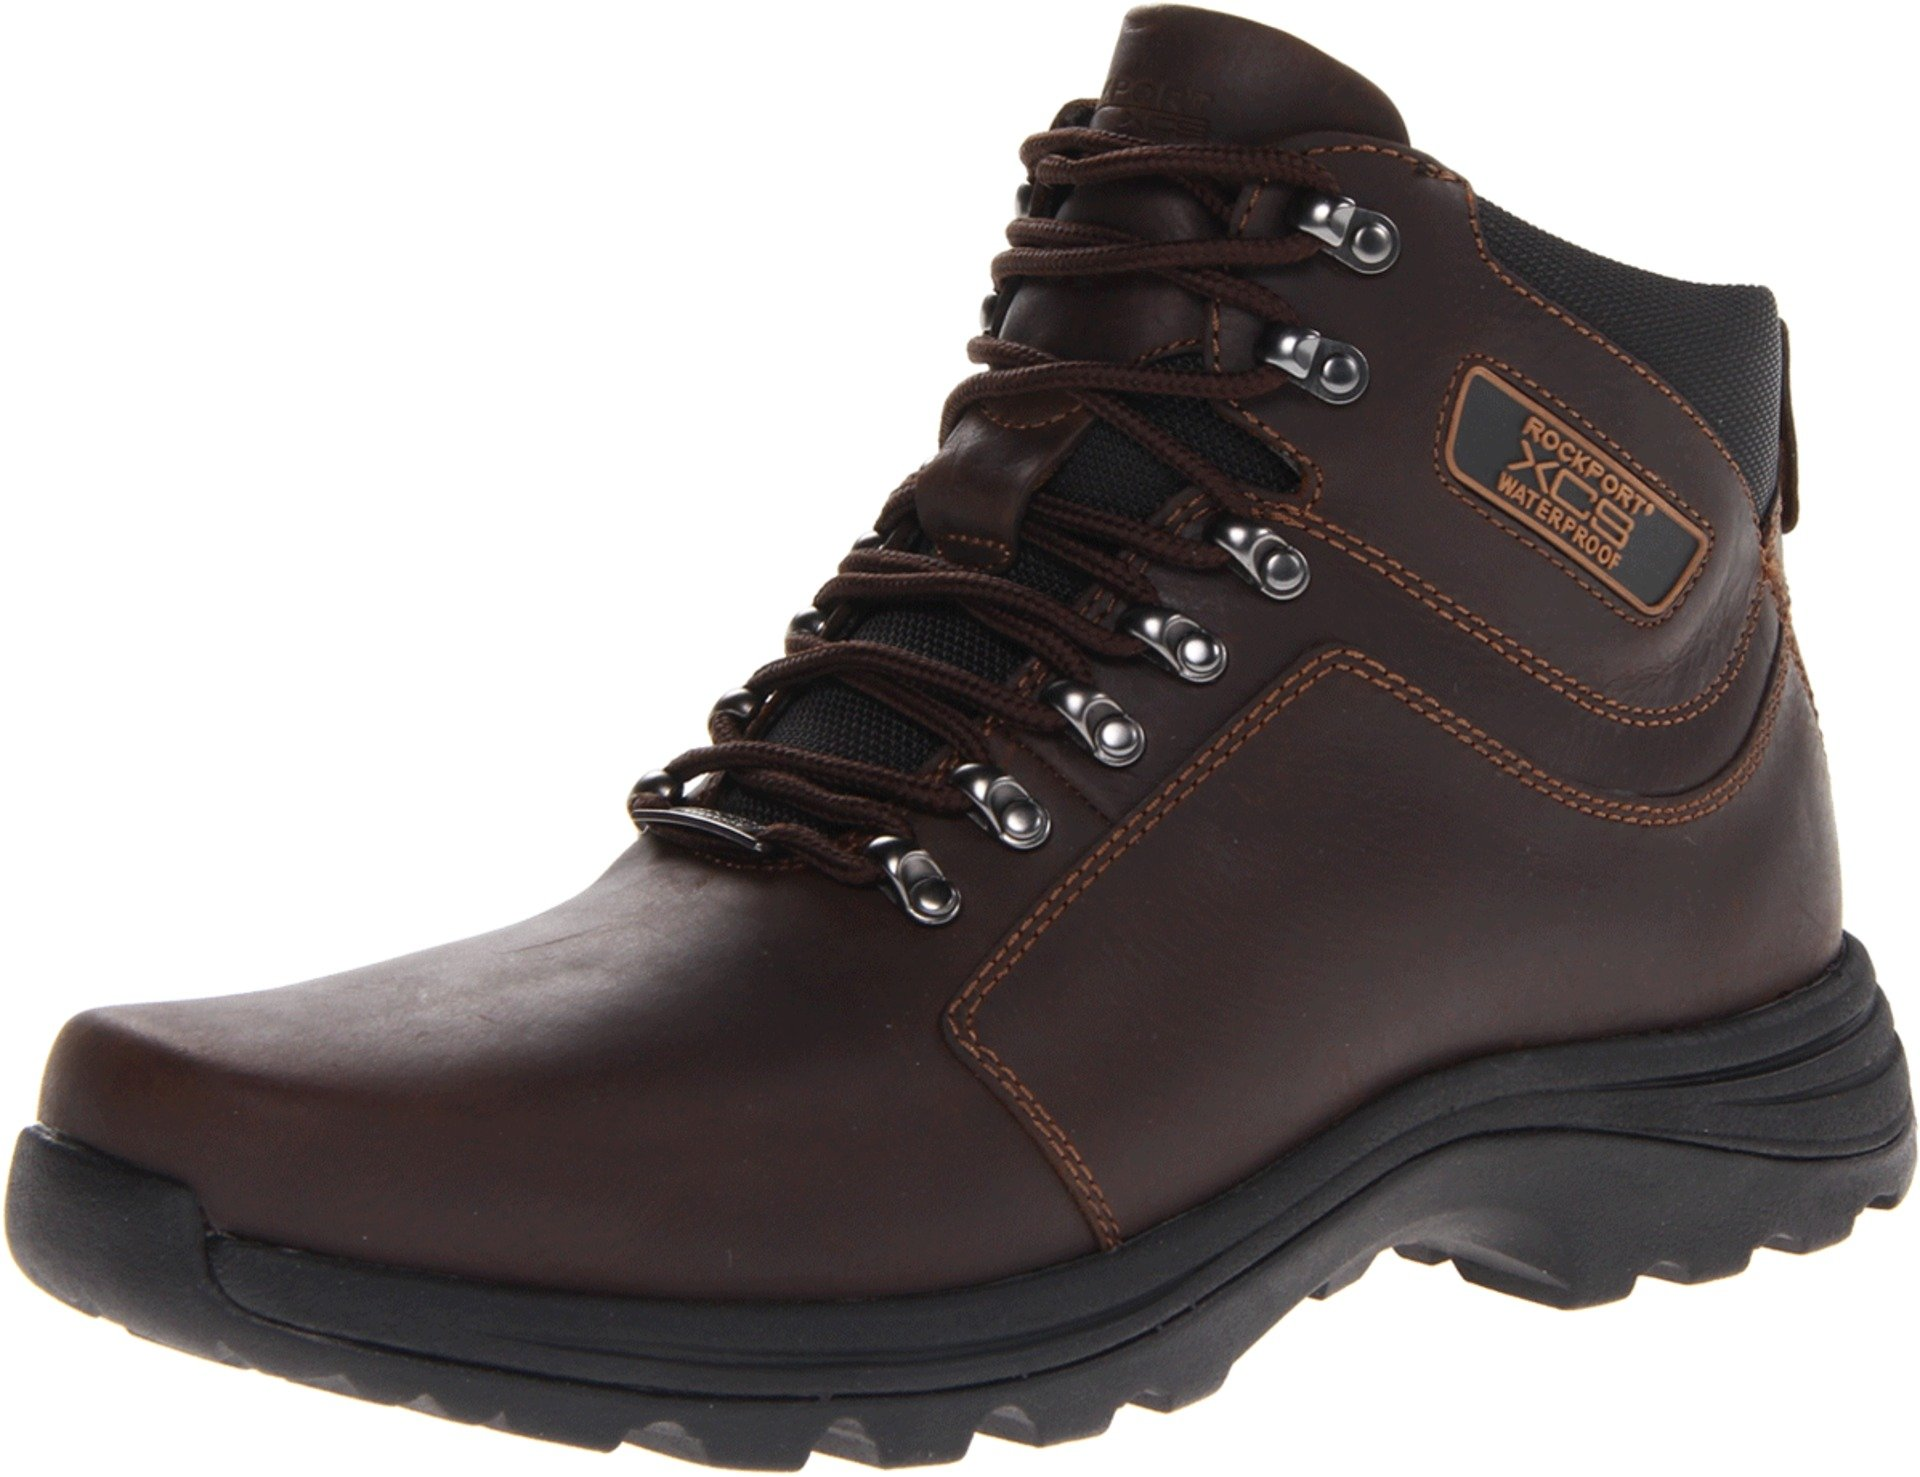 Rockport Men's Elkhart Snow Boot-Chocolate-10.5 M